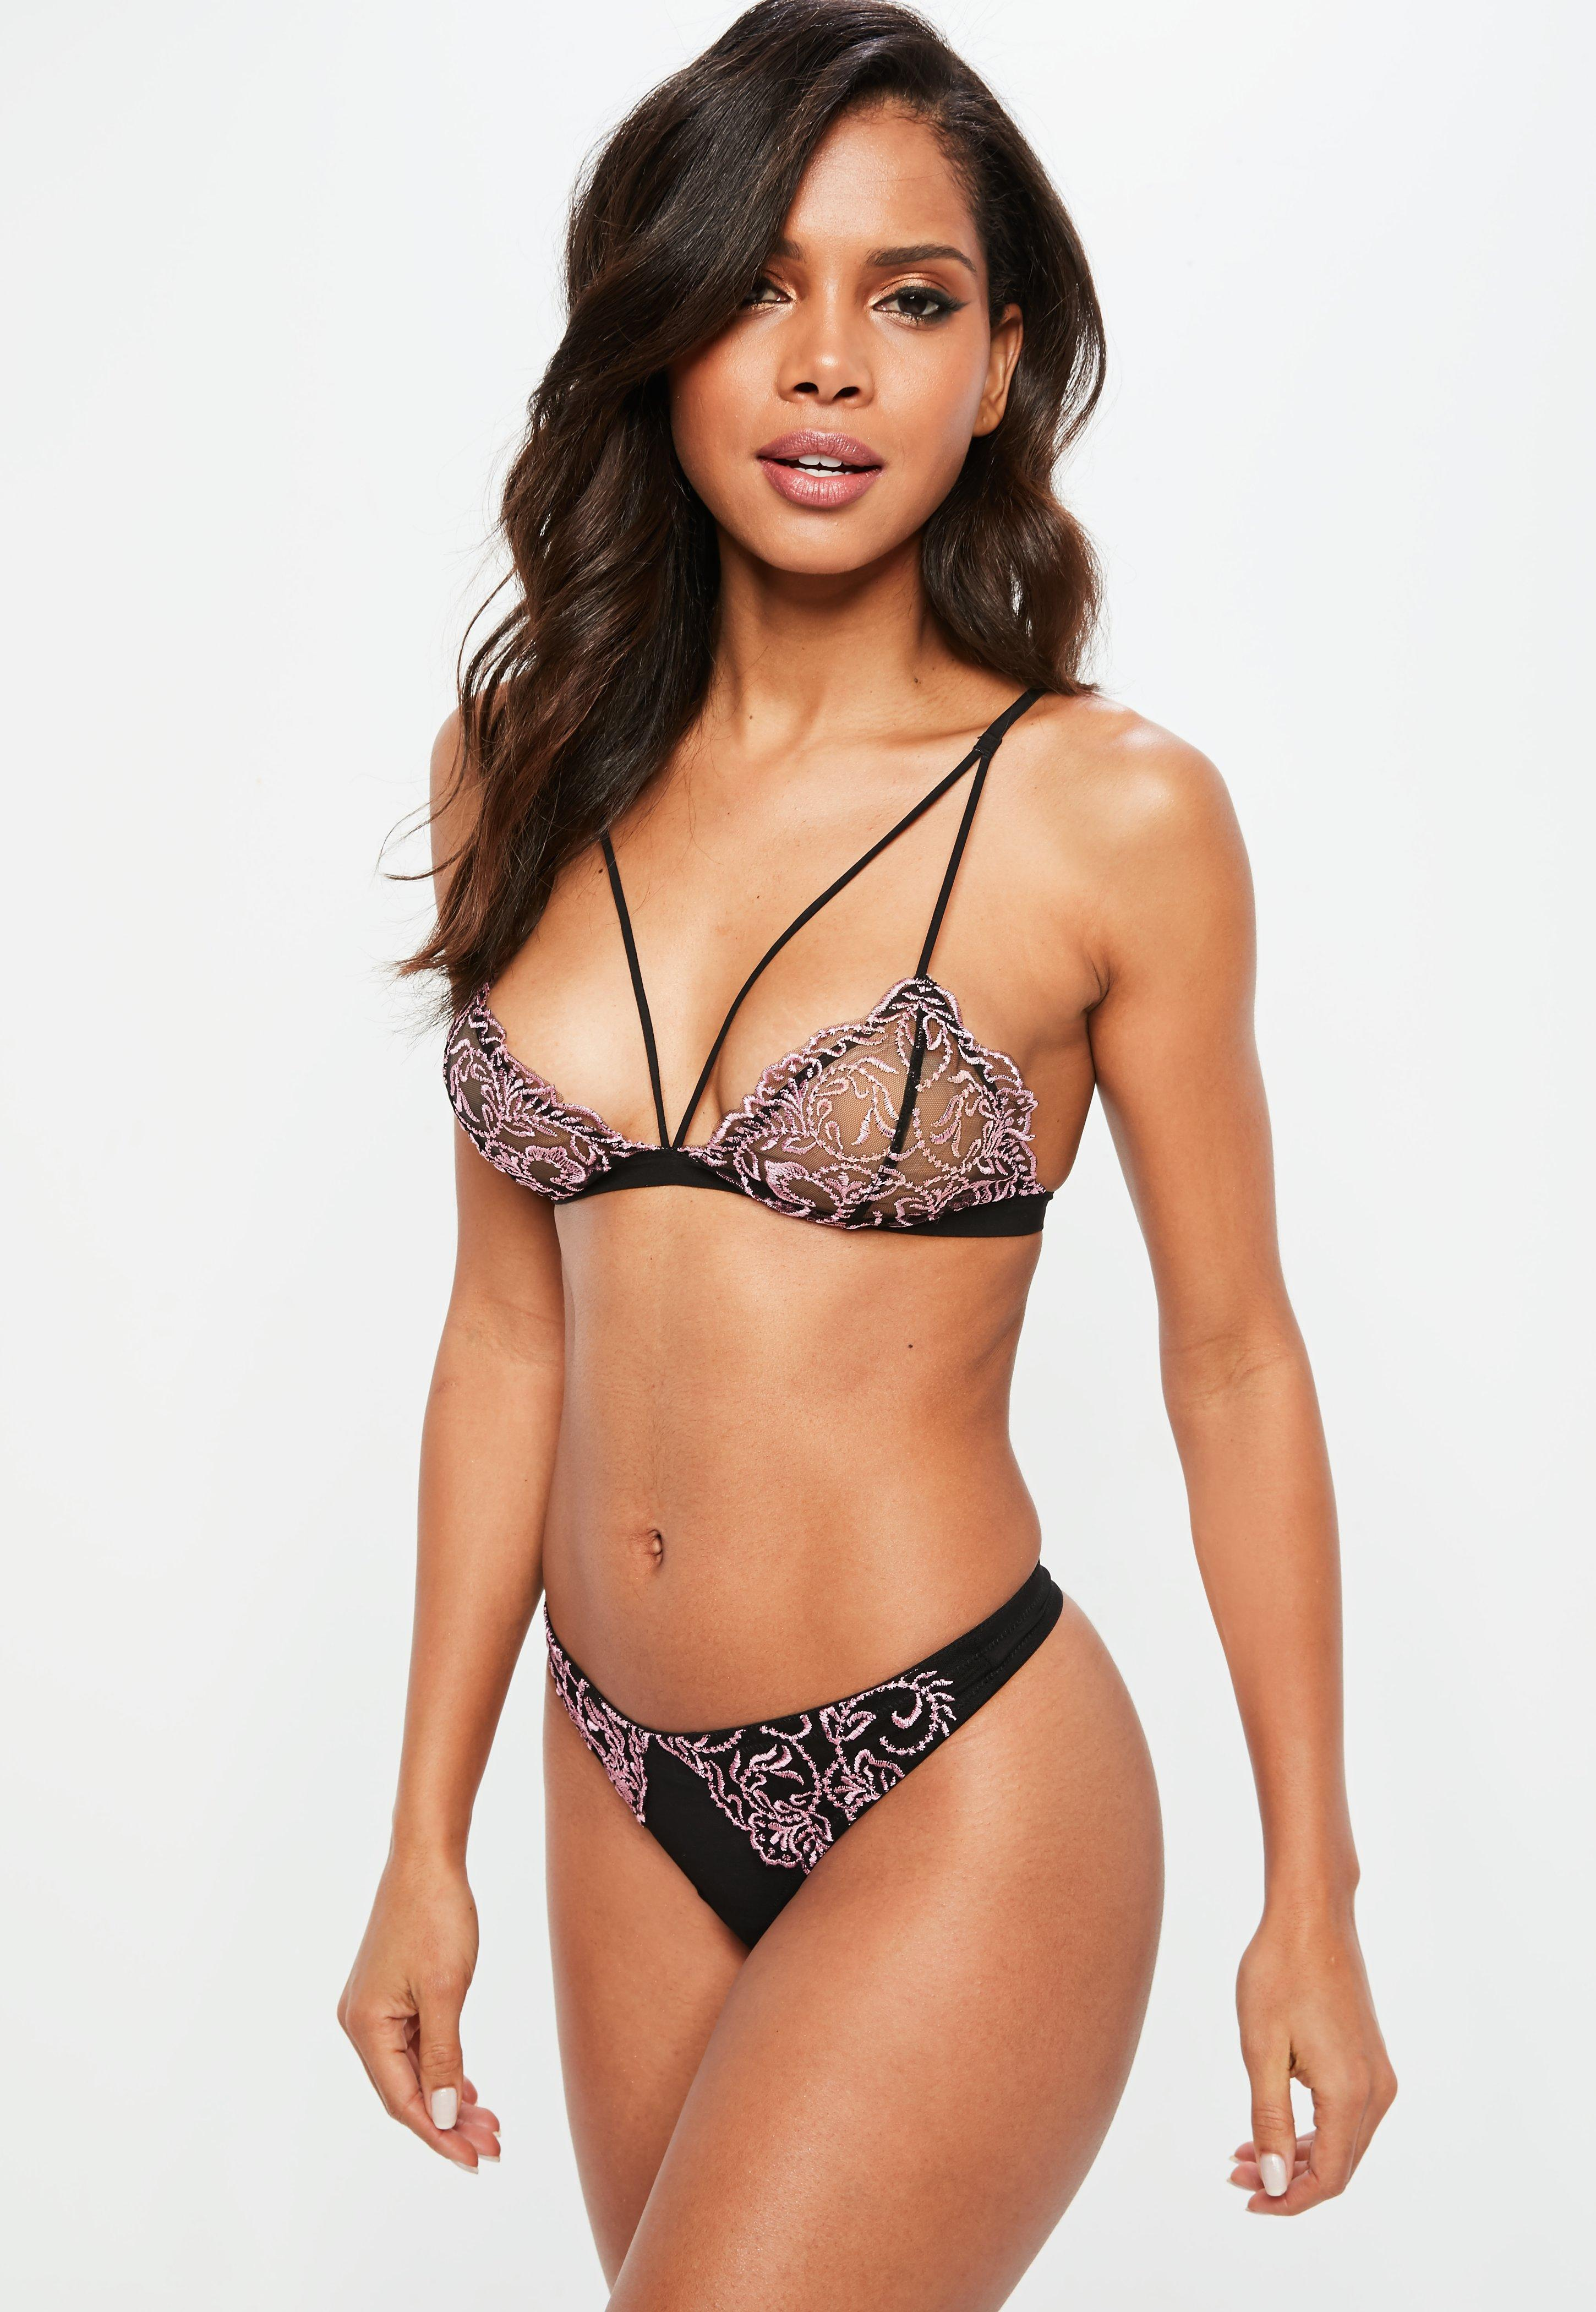 a92cdf8f93 Lyst - Missguided Black Corded Lace Triangle Bra in Black